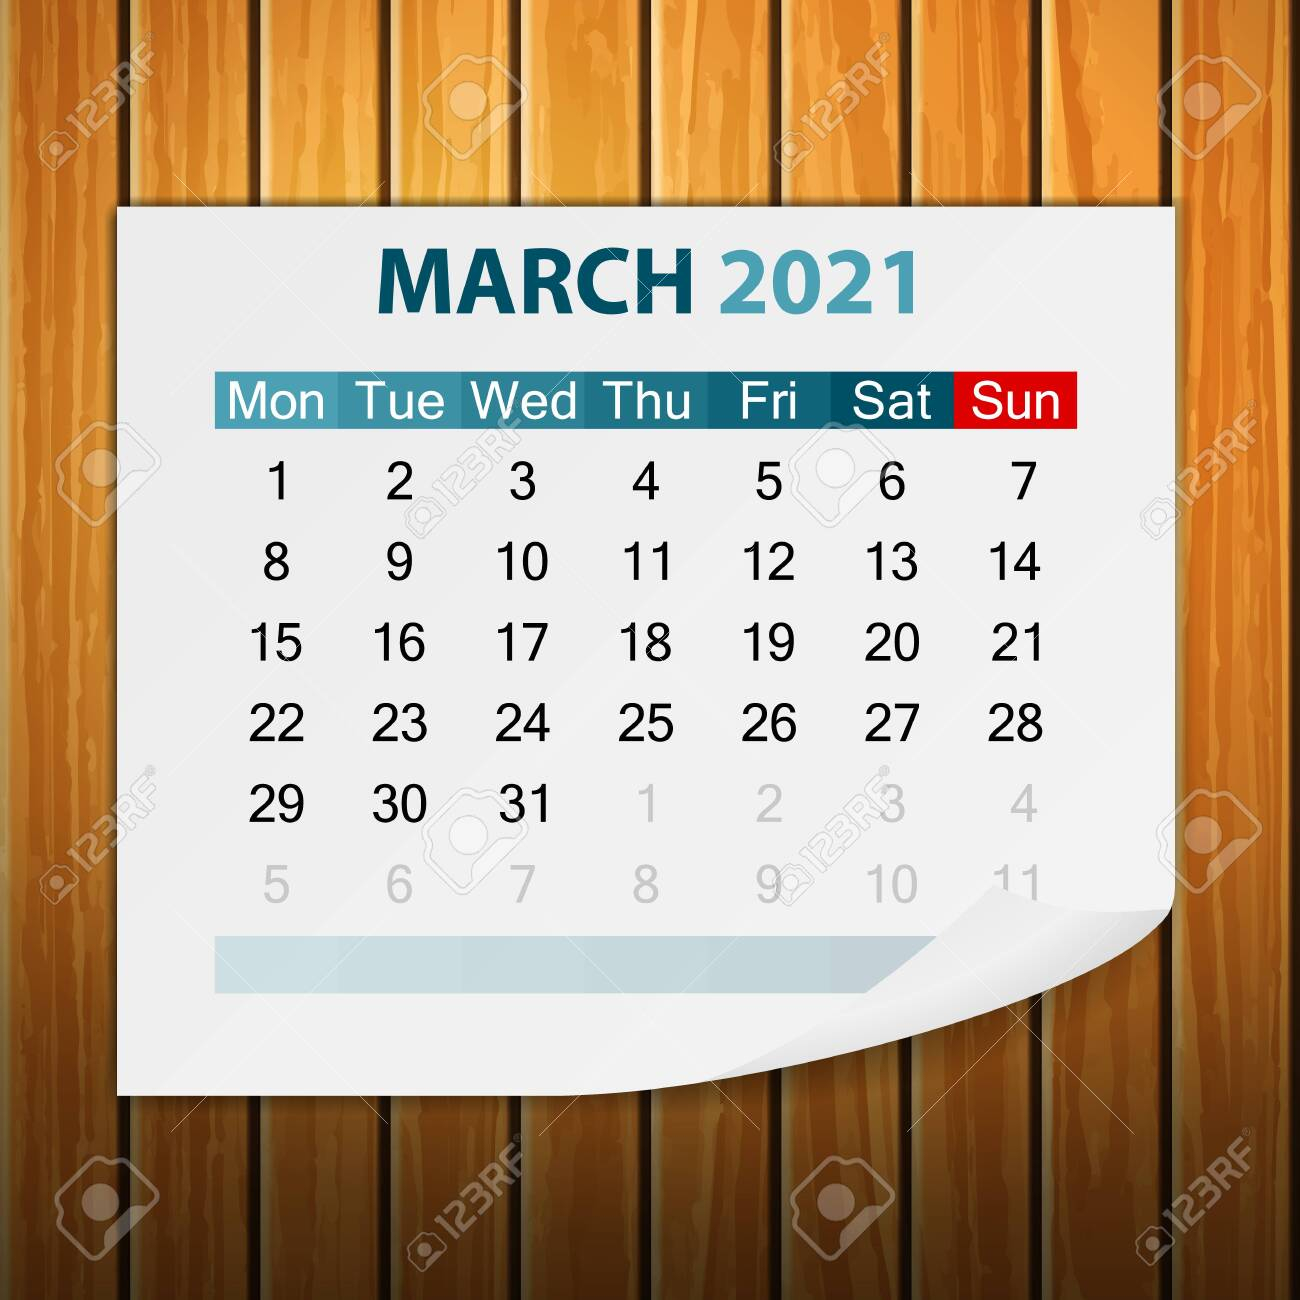 photo stock vector calendar march 2021 on wood background vector illustration